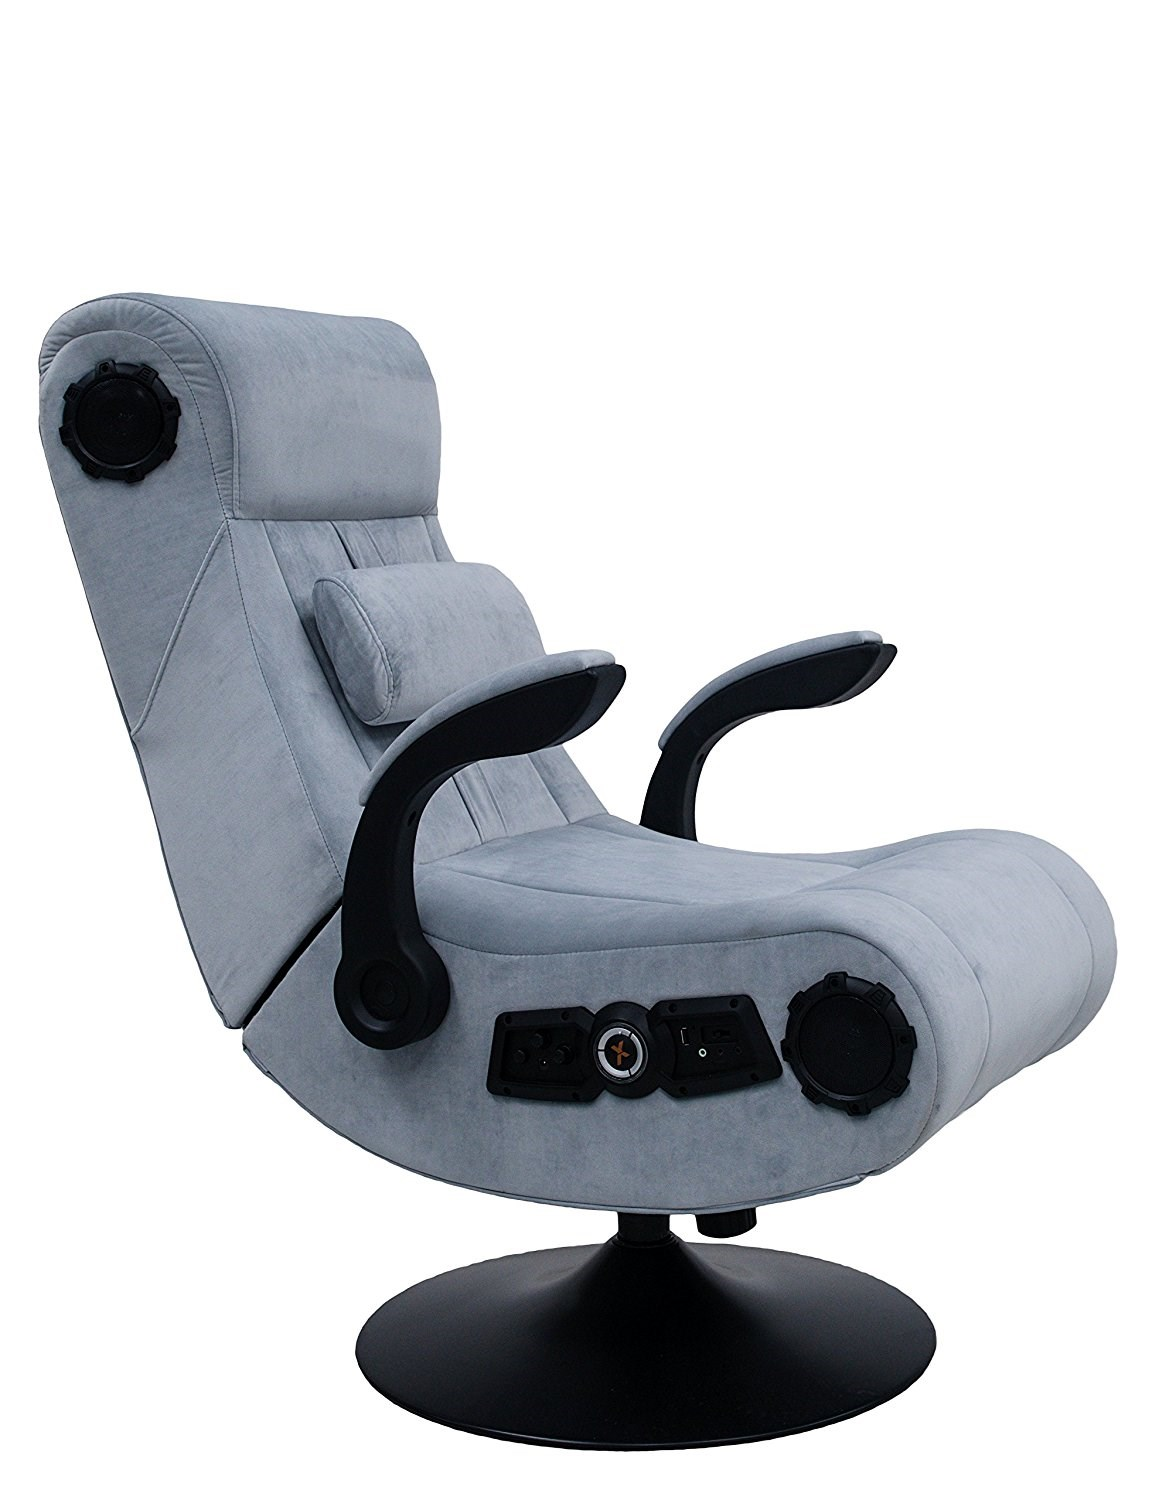 X Rocker Deluxe 4 1 High Back Fabric Gaming Chair Grey Upholstery And Black Frame With Bluetooth Speakers